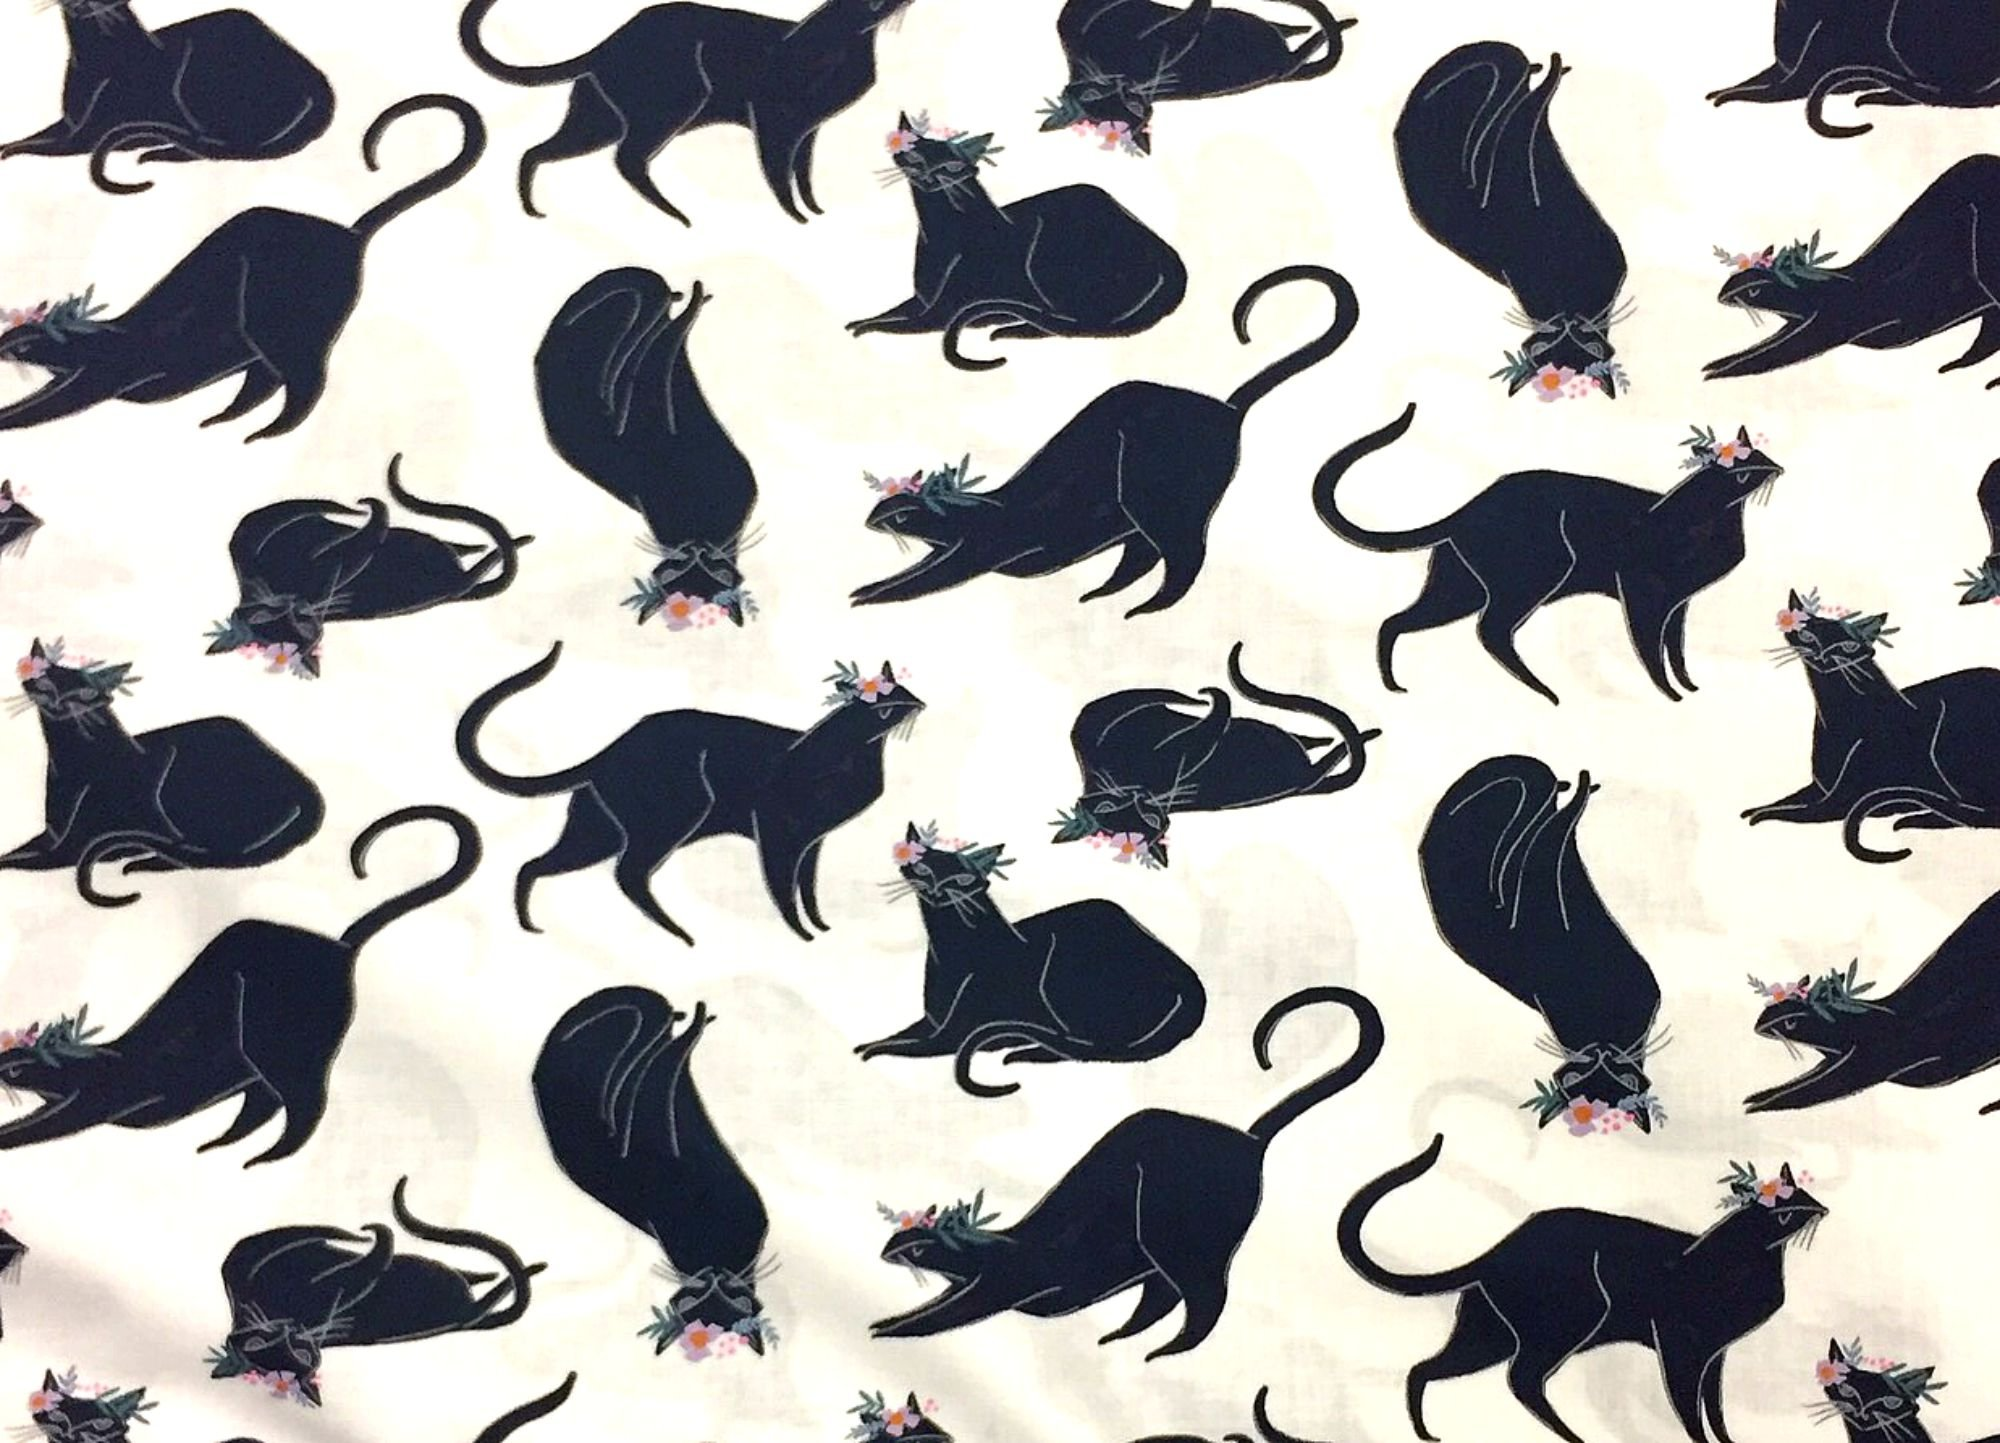 Kitty Black Cat Retro Kitten Illustration Cotton Quilt Fabric FT119